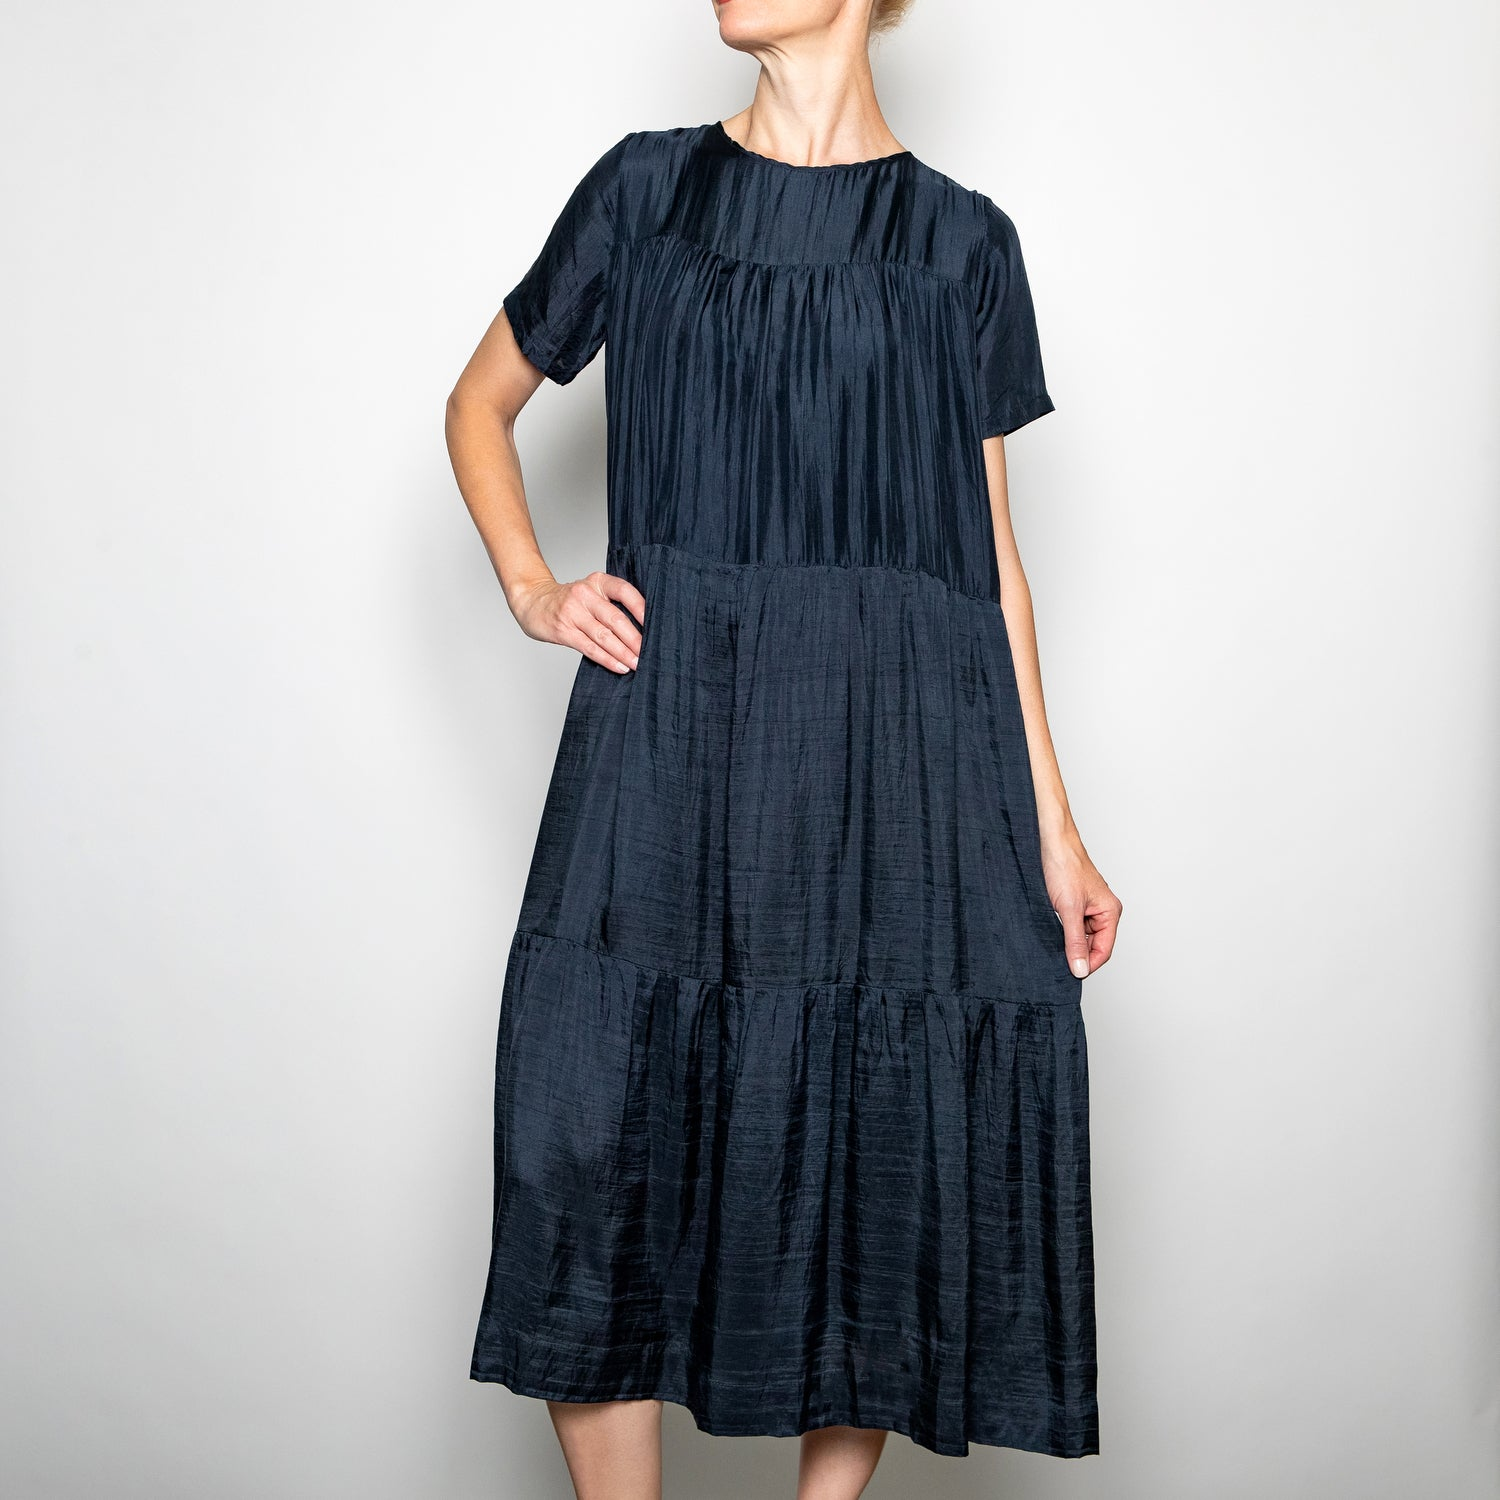 Annam Ami Tiered Short Sleeve Dress